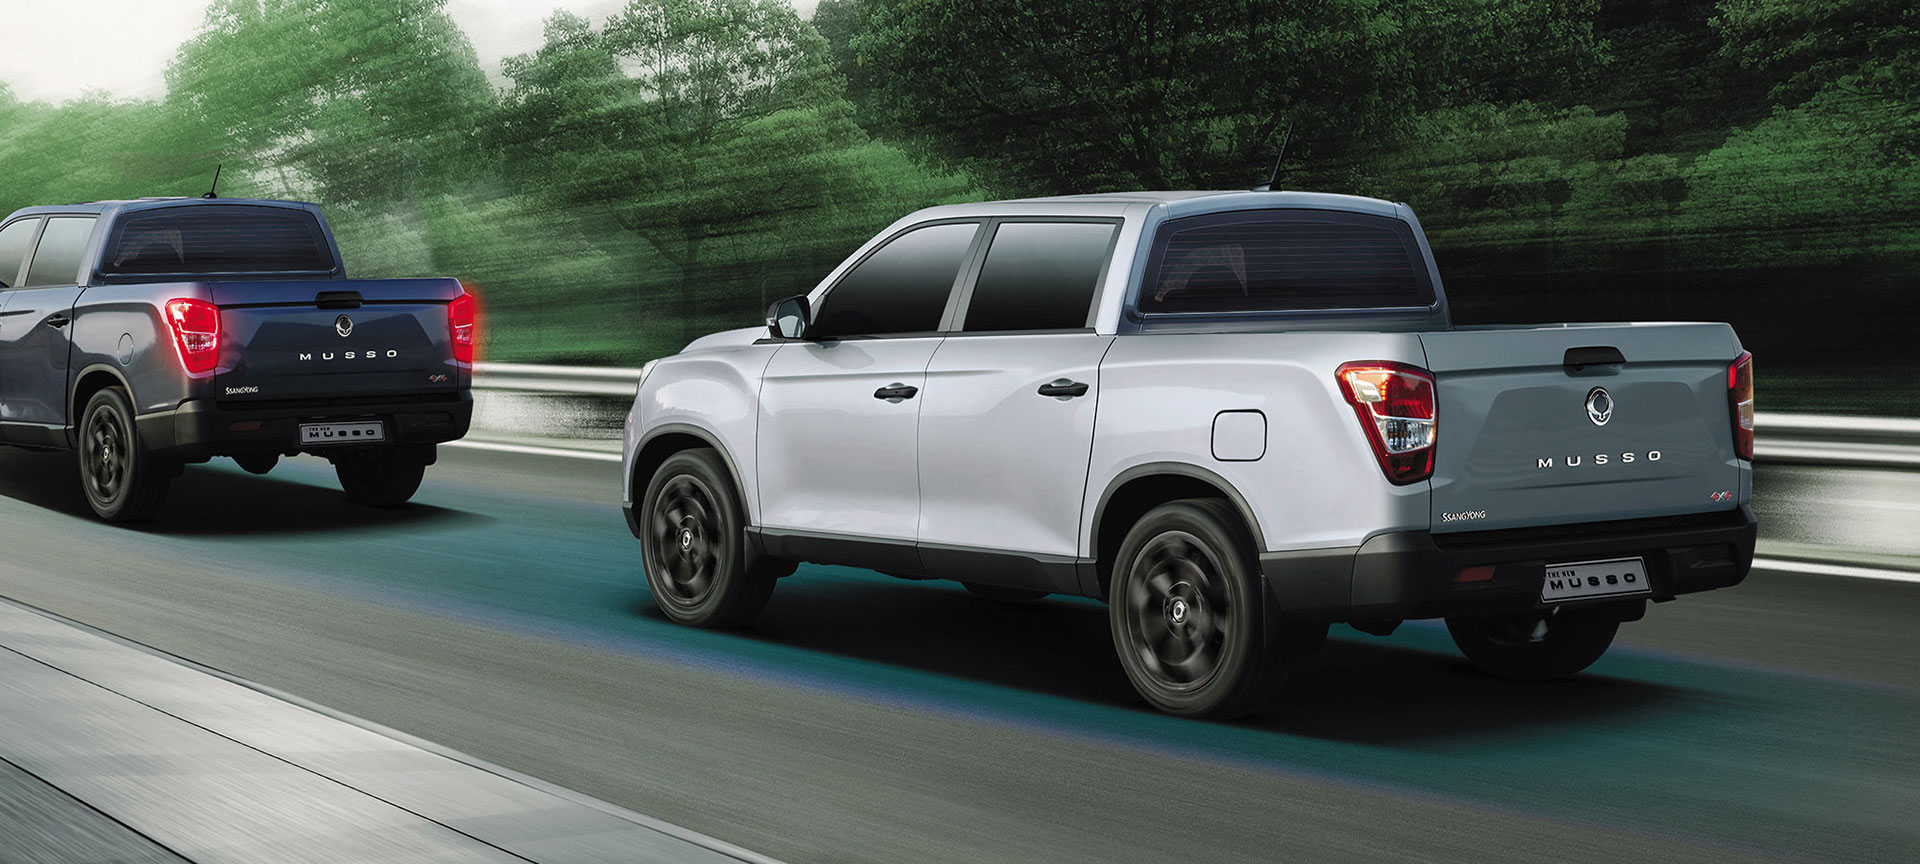 SsangYong - Musso - Safety